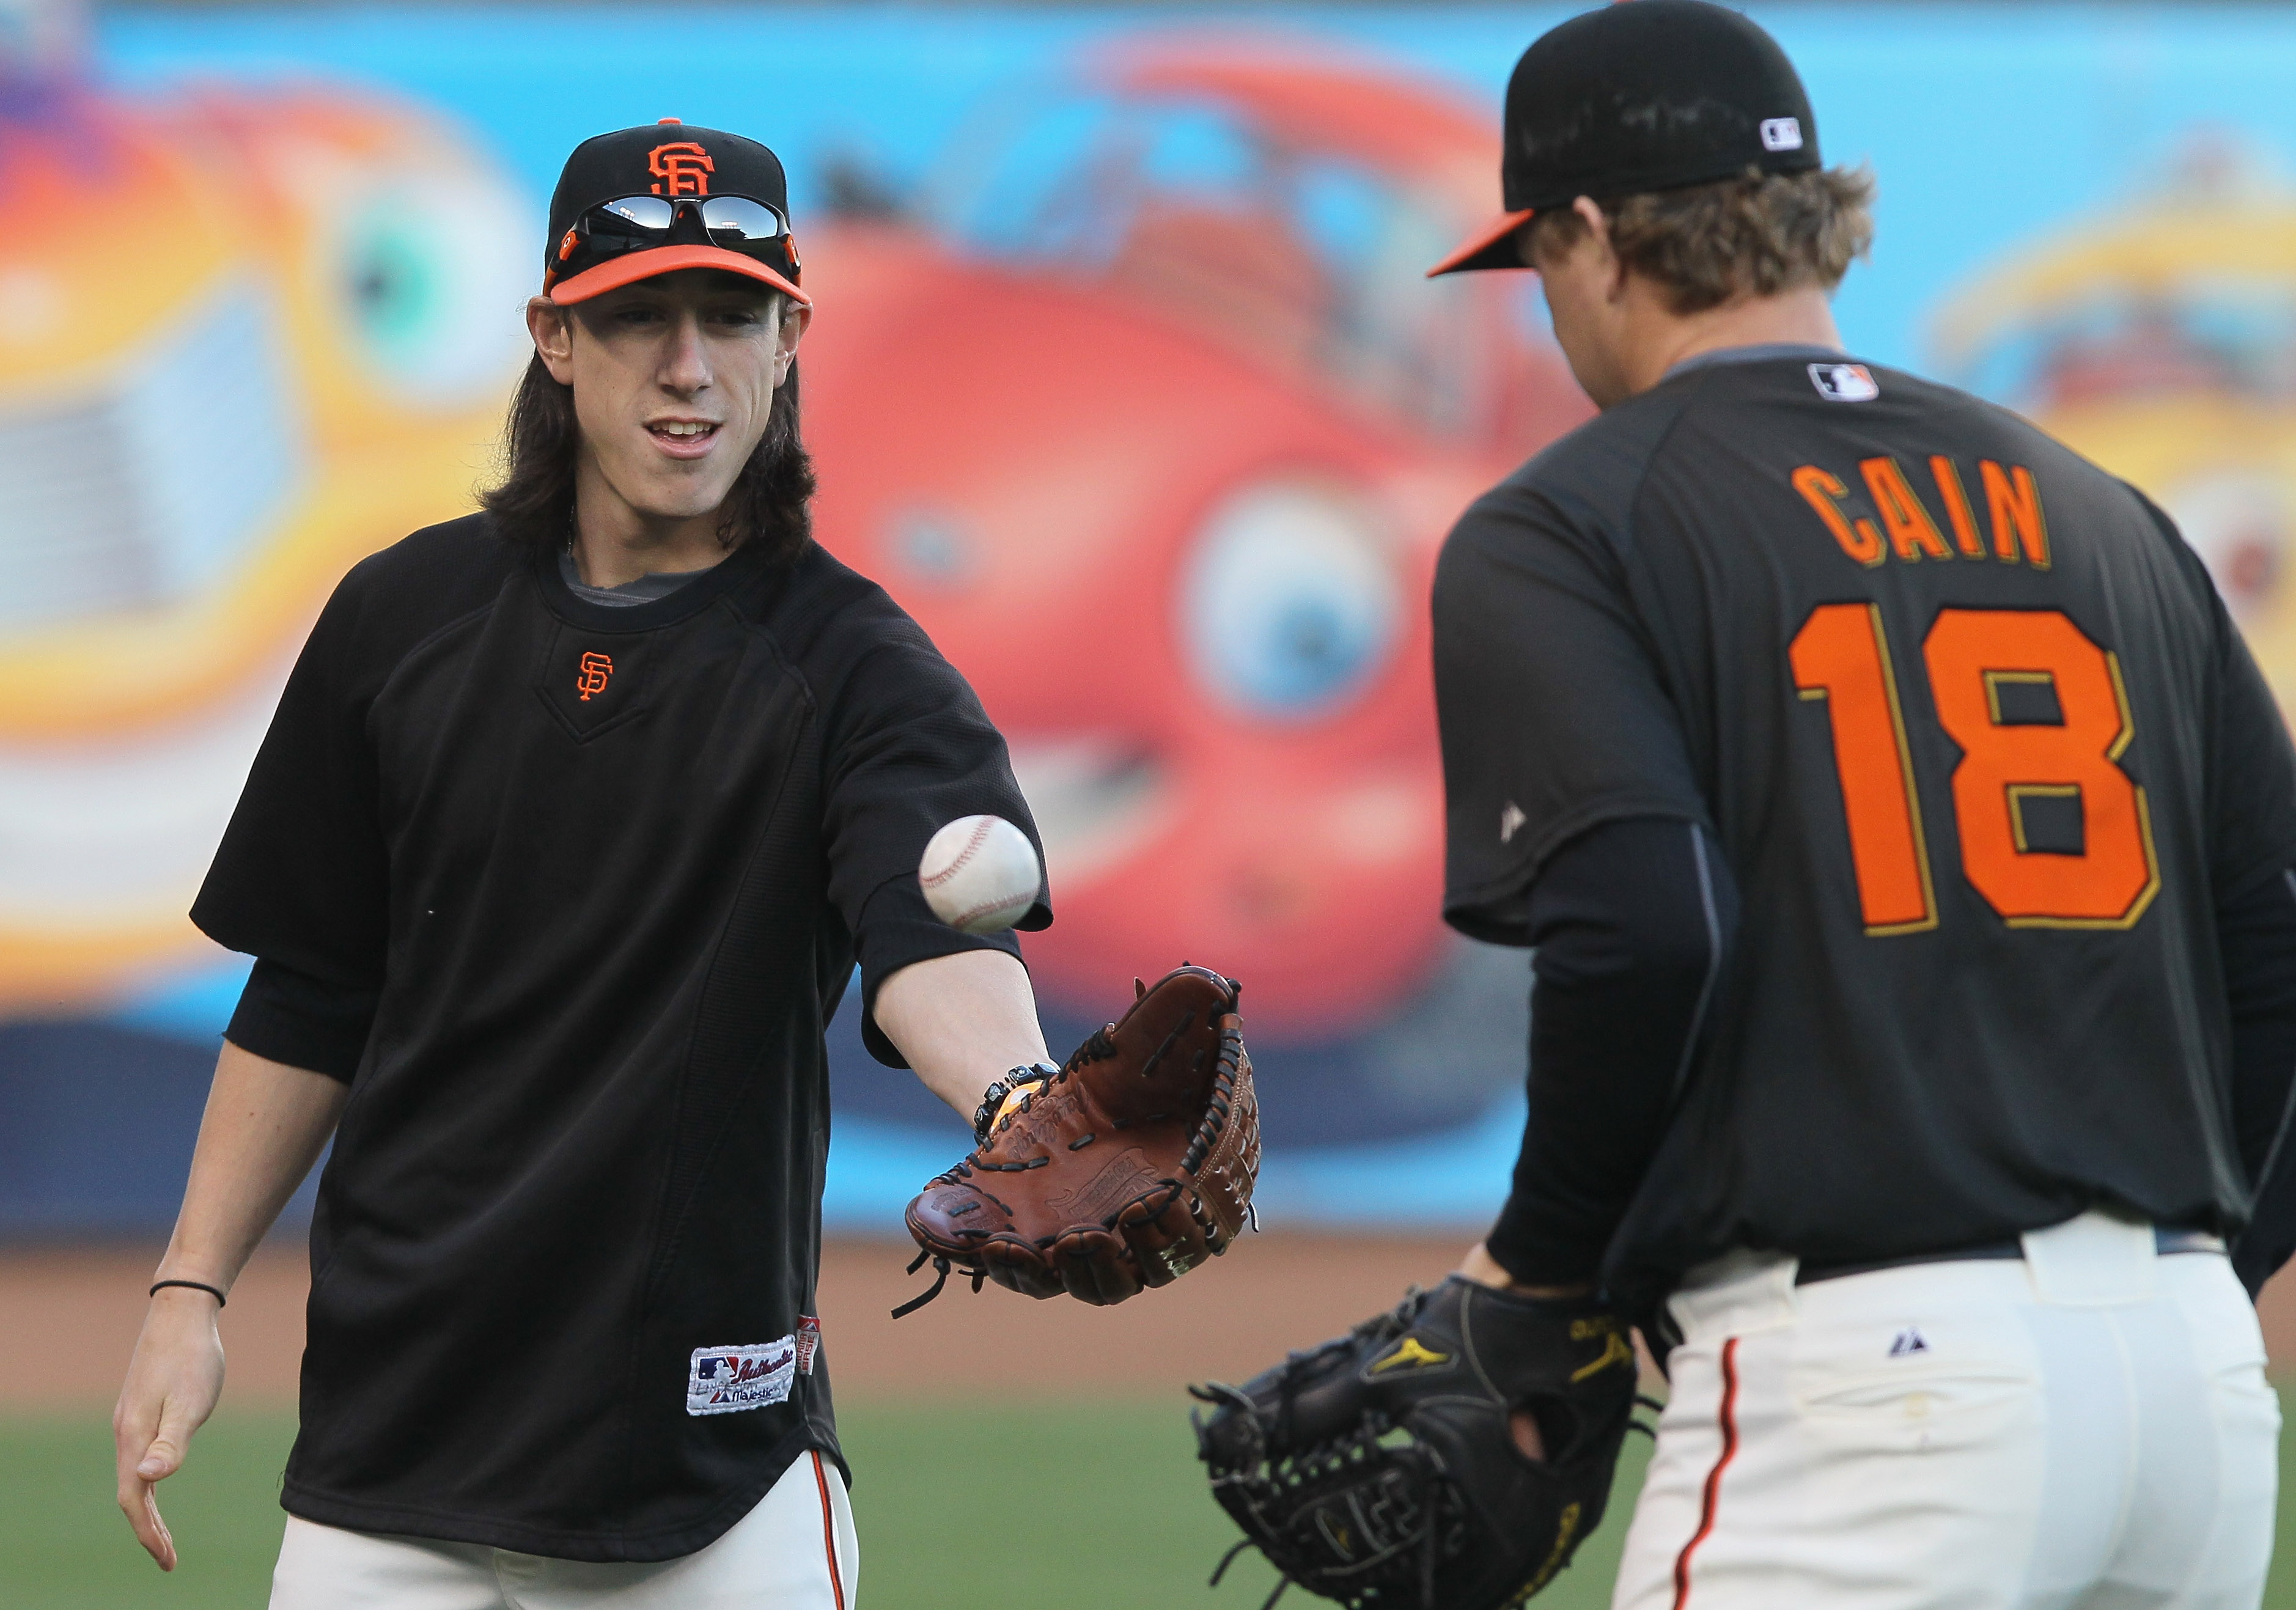 SAN FRANCISCO - OCTOBER 25:  Tim Lincecum #55 of the San Francisco Giants plays catch with teammate Matt Cain #18 during a team workout at AT&T Park on October 25, 2010 in San Francisco, California. The Giants are preparing to face the Texas Rangers in th